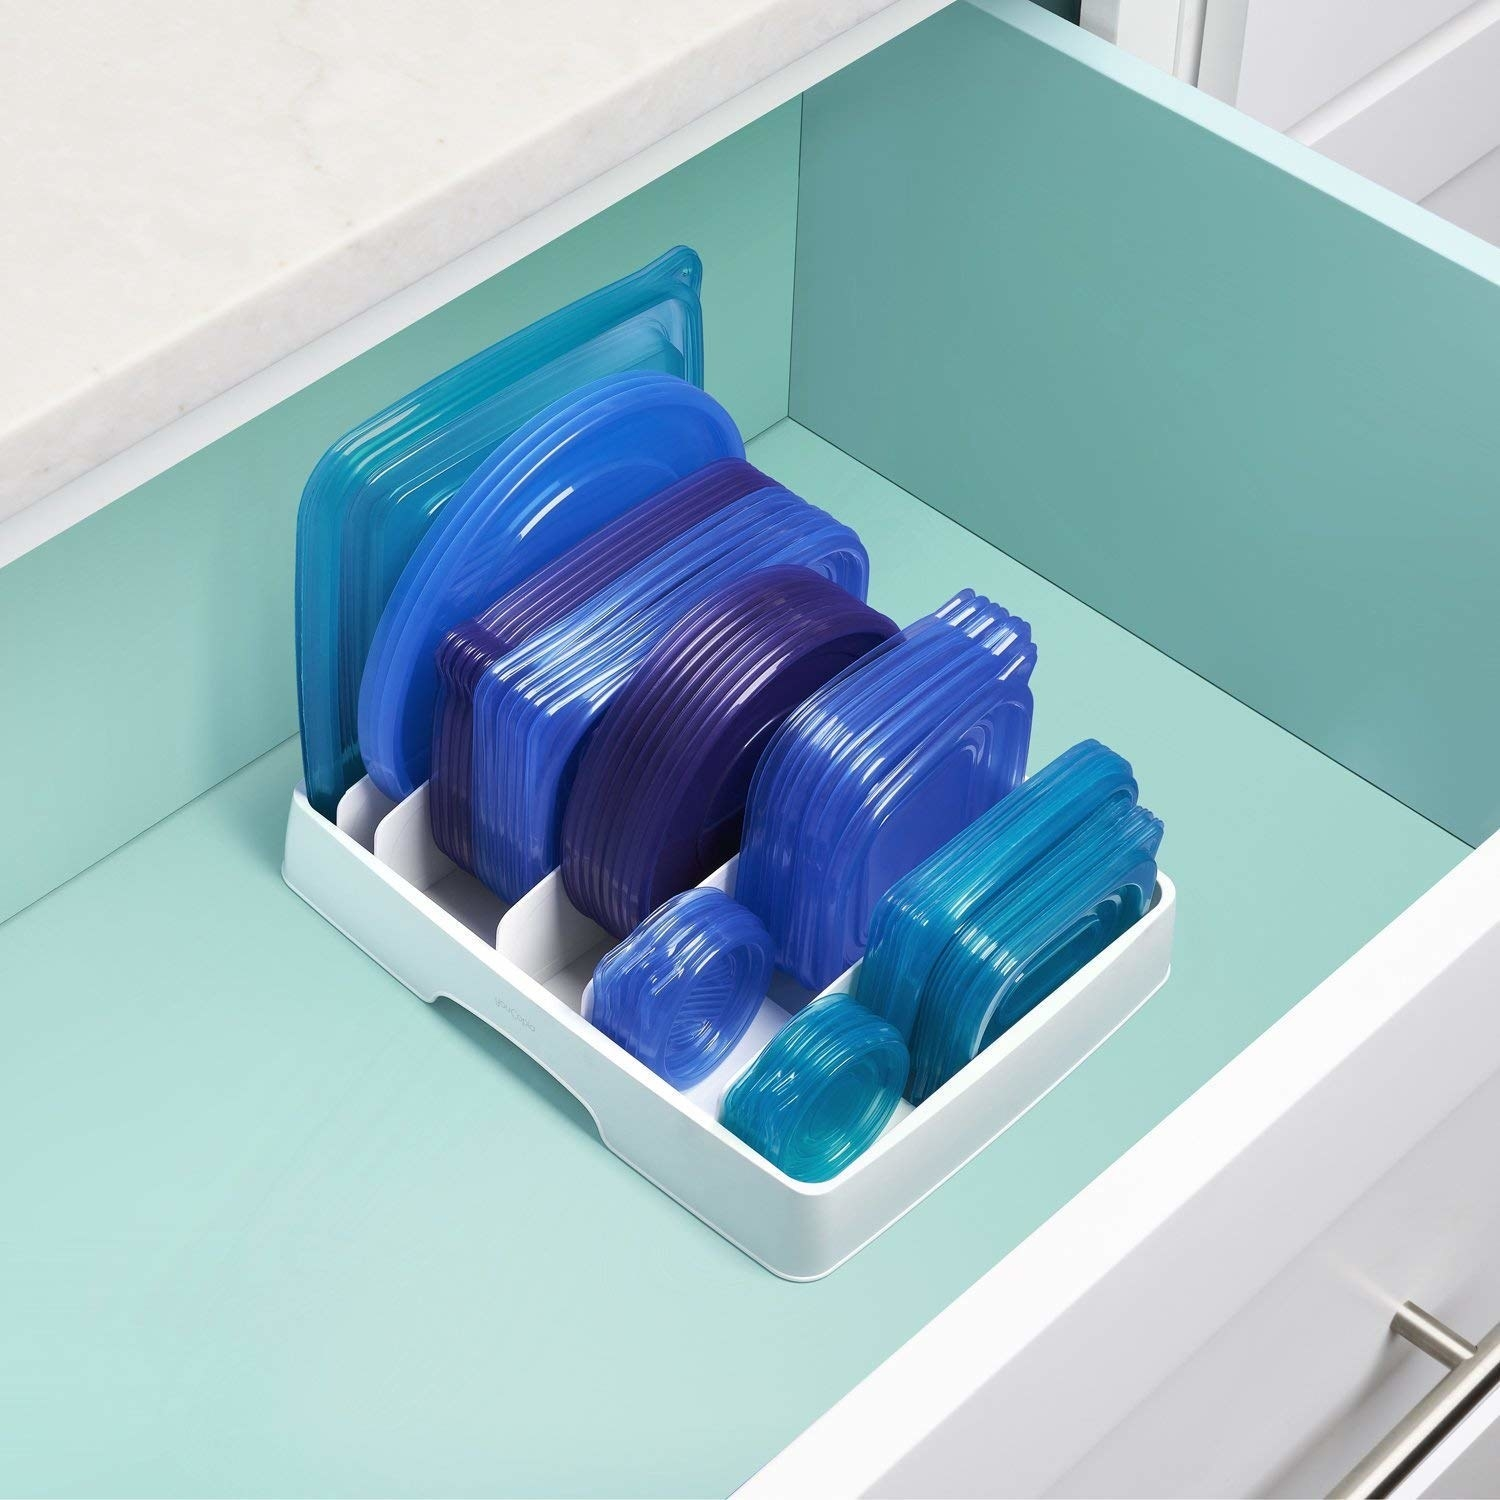 Lids organized in different sizes, in different sections of the trey